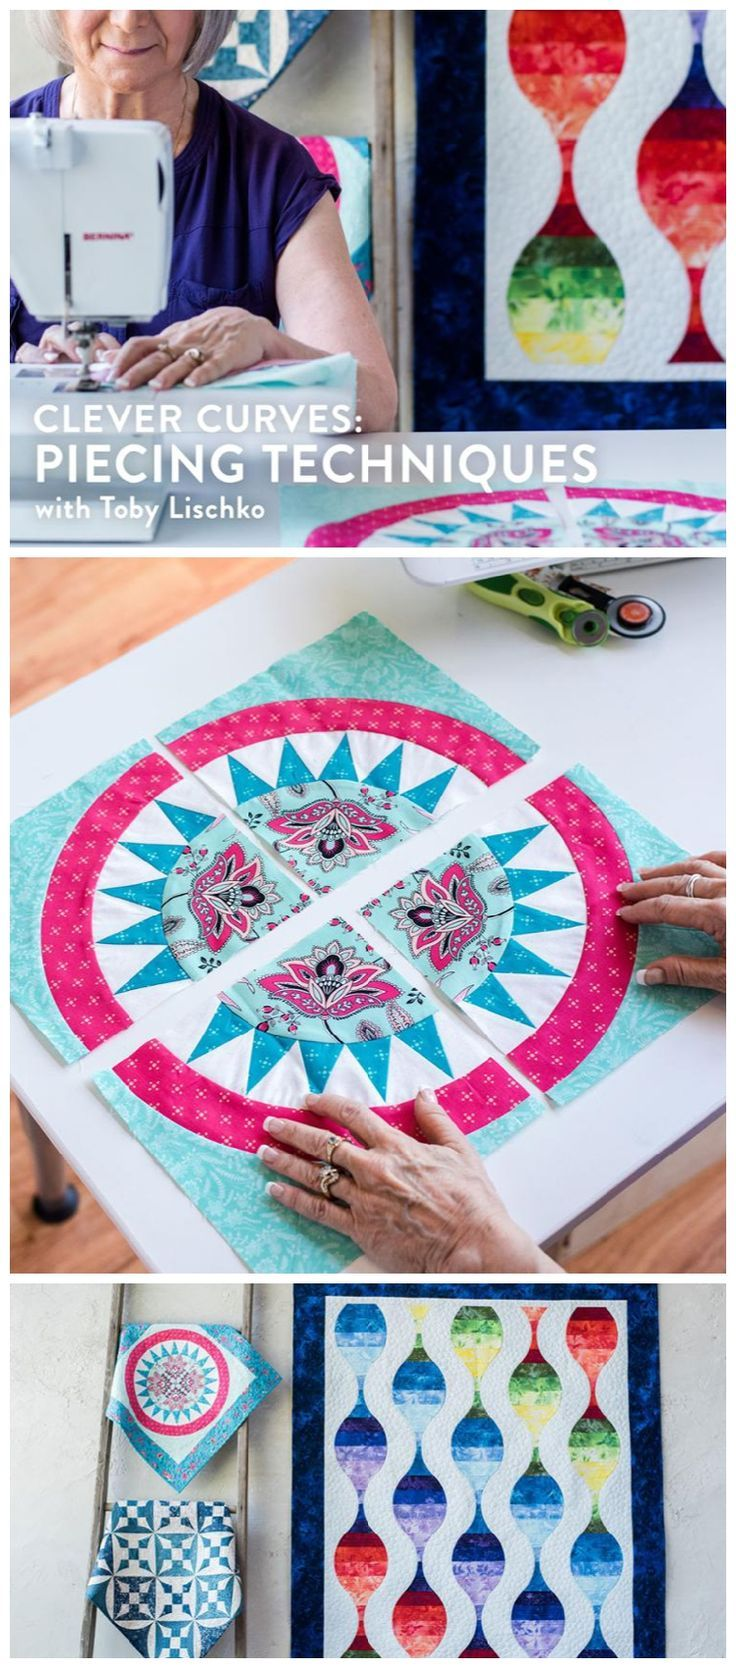 Clever Curves:  Piecing Techniques.  Learn how to piece curves for   quilting.  Quilting curves.  techniques to help you create pucker-free   curves, first using a simple pinning technique and then with paperless   foundation piecing, all   building up to